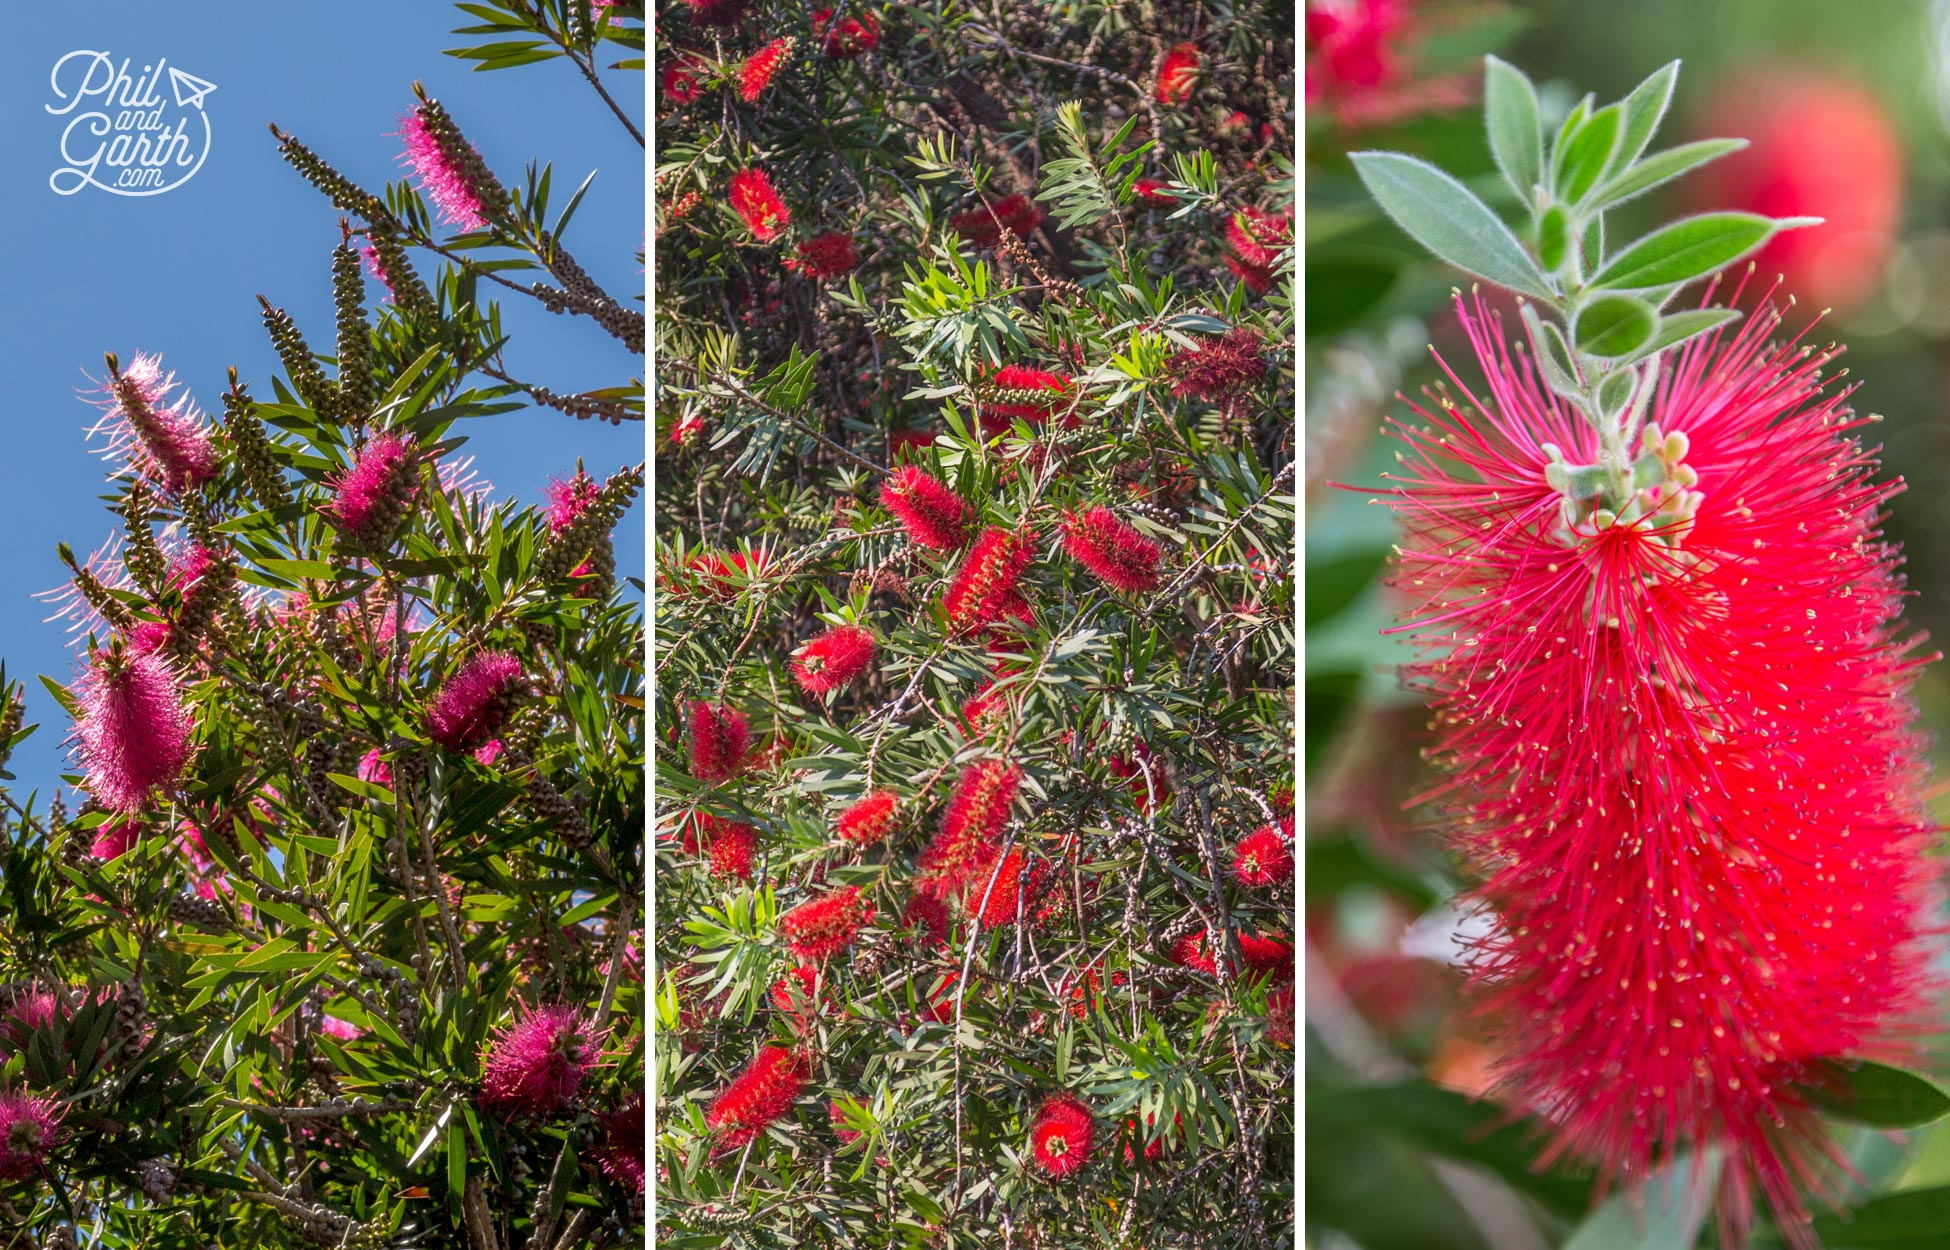 Bottlebrush plants are everywhere in Knysna and South Africa